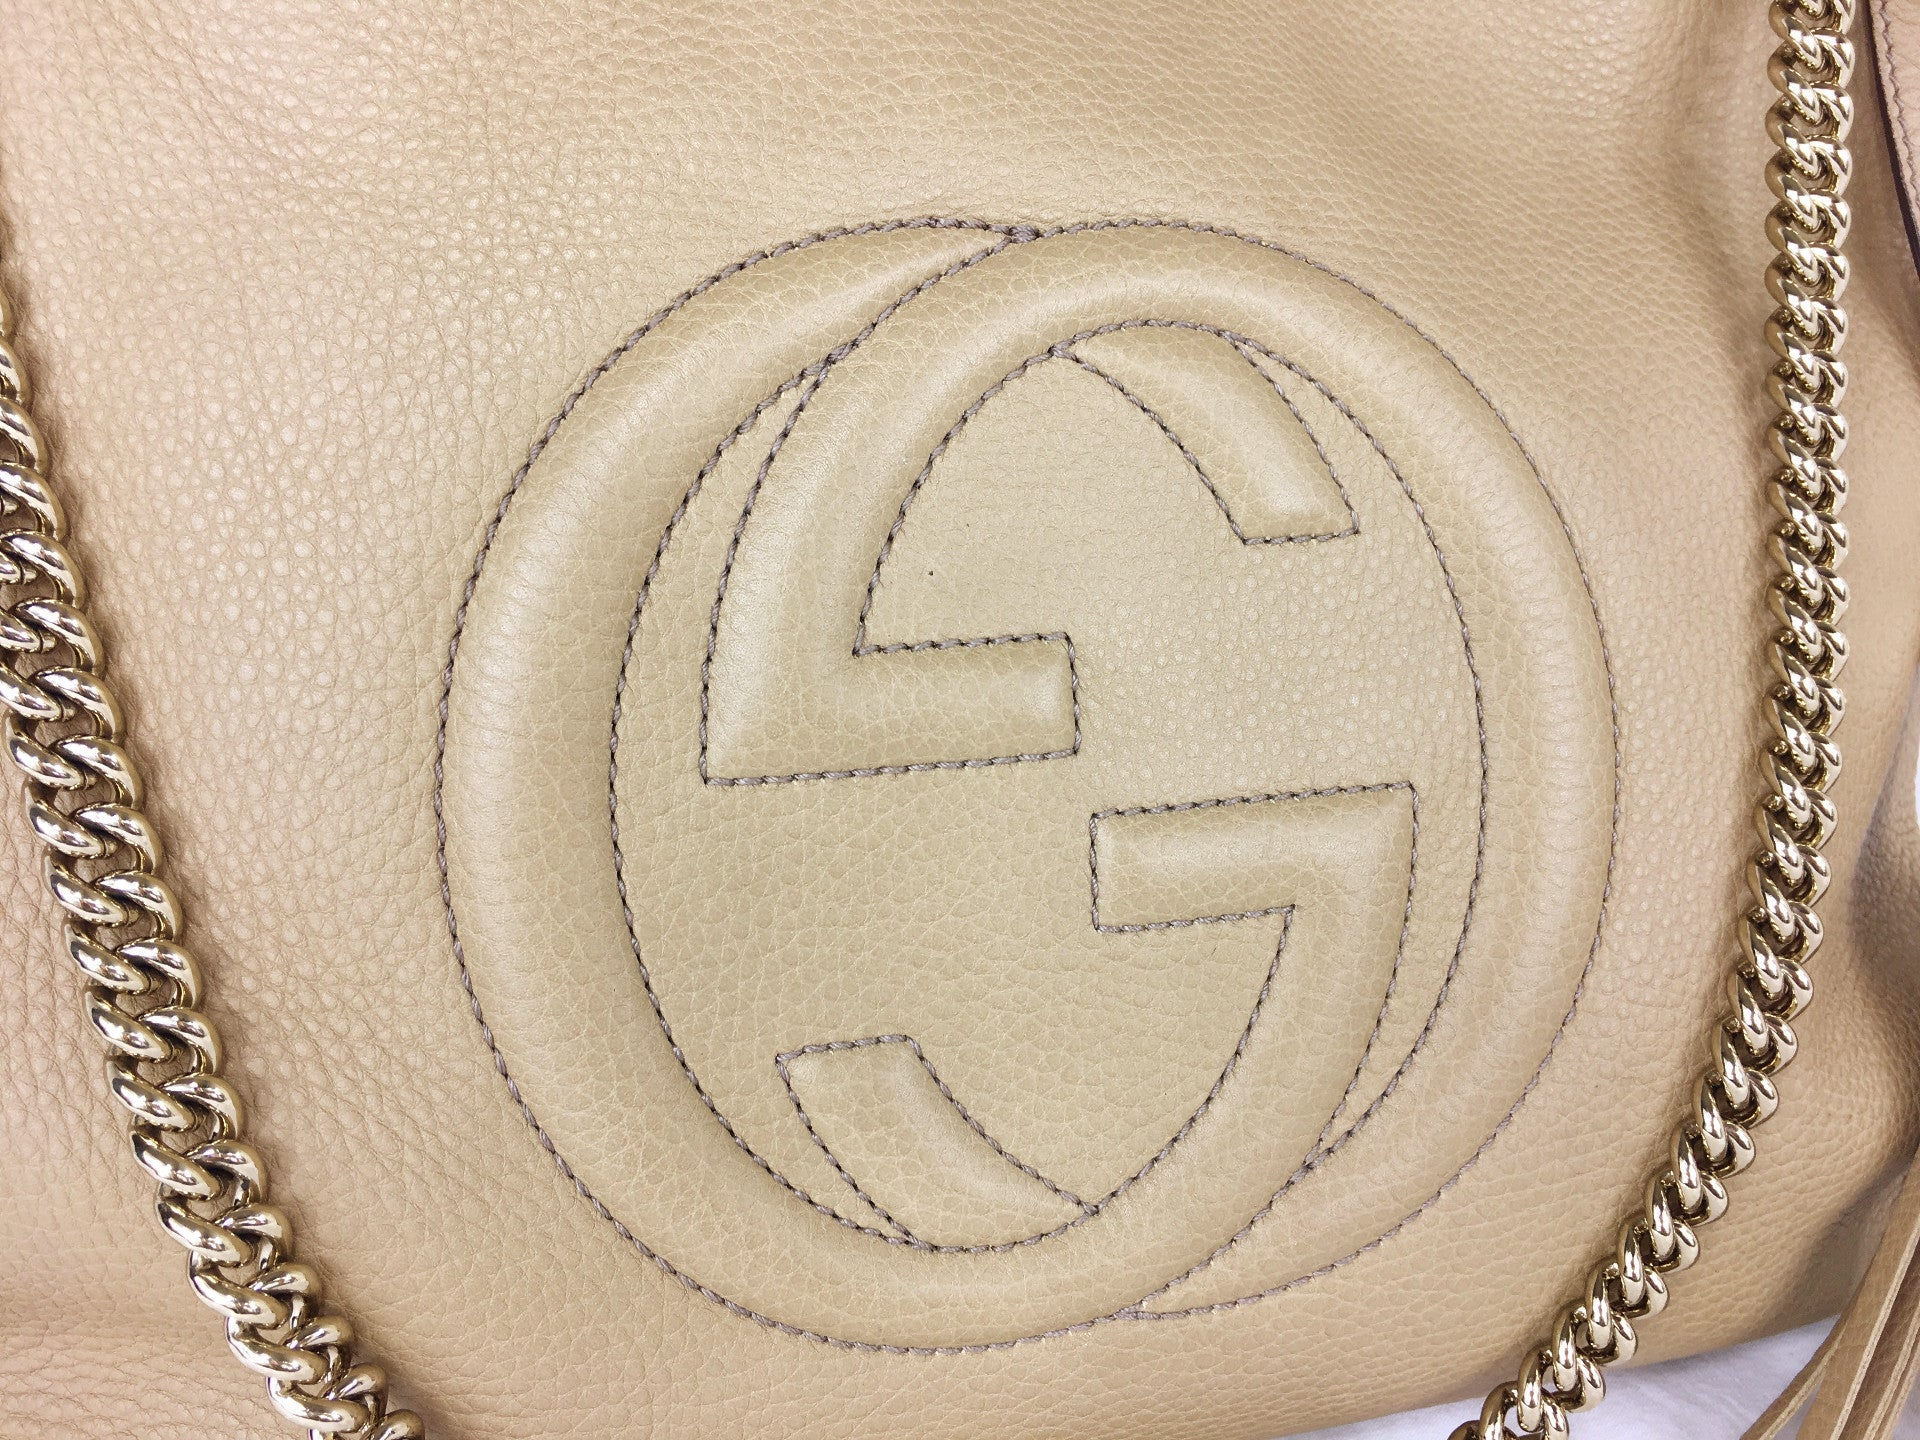 GUCCI Soho Pebbled Leather Tote (Large)